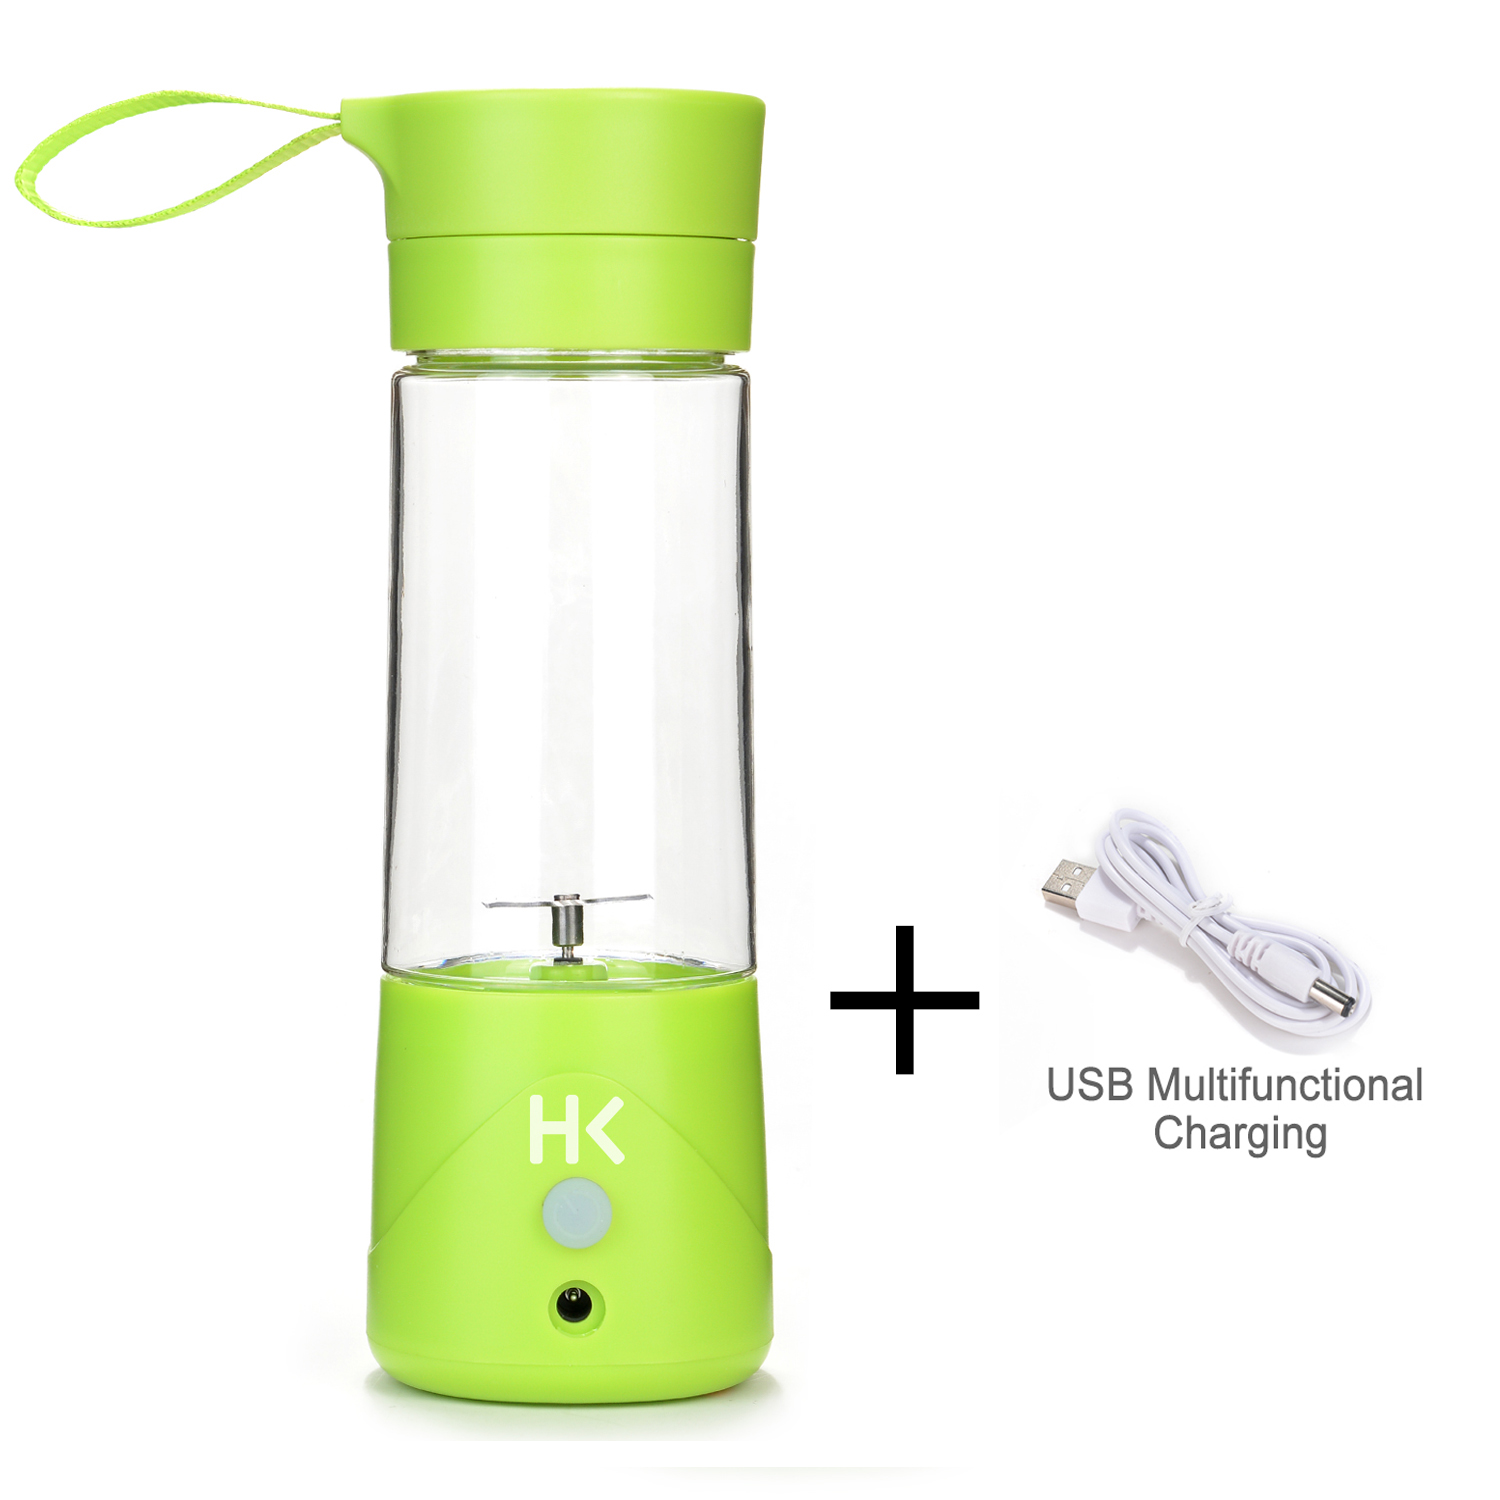 380ml Mini USB Juicer Cup Portable Rechargeable Fruit Blender Crusher w  USB Charge Cable Multifunctional by